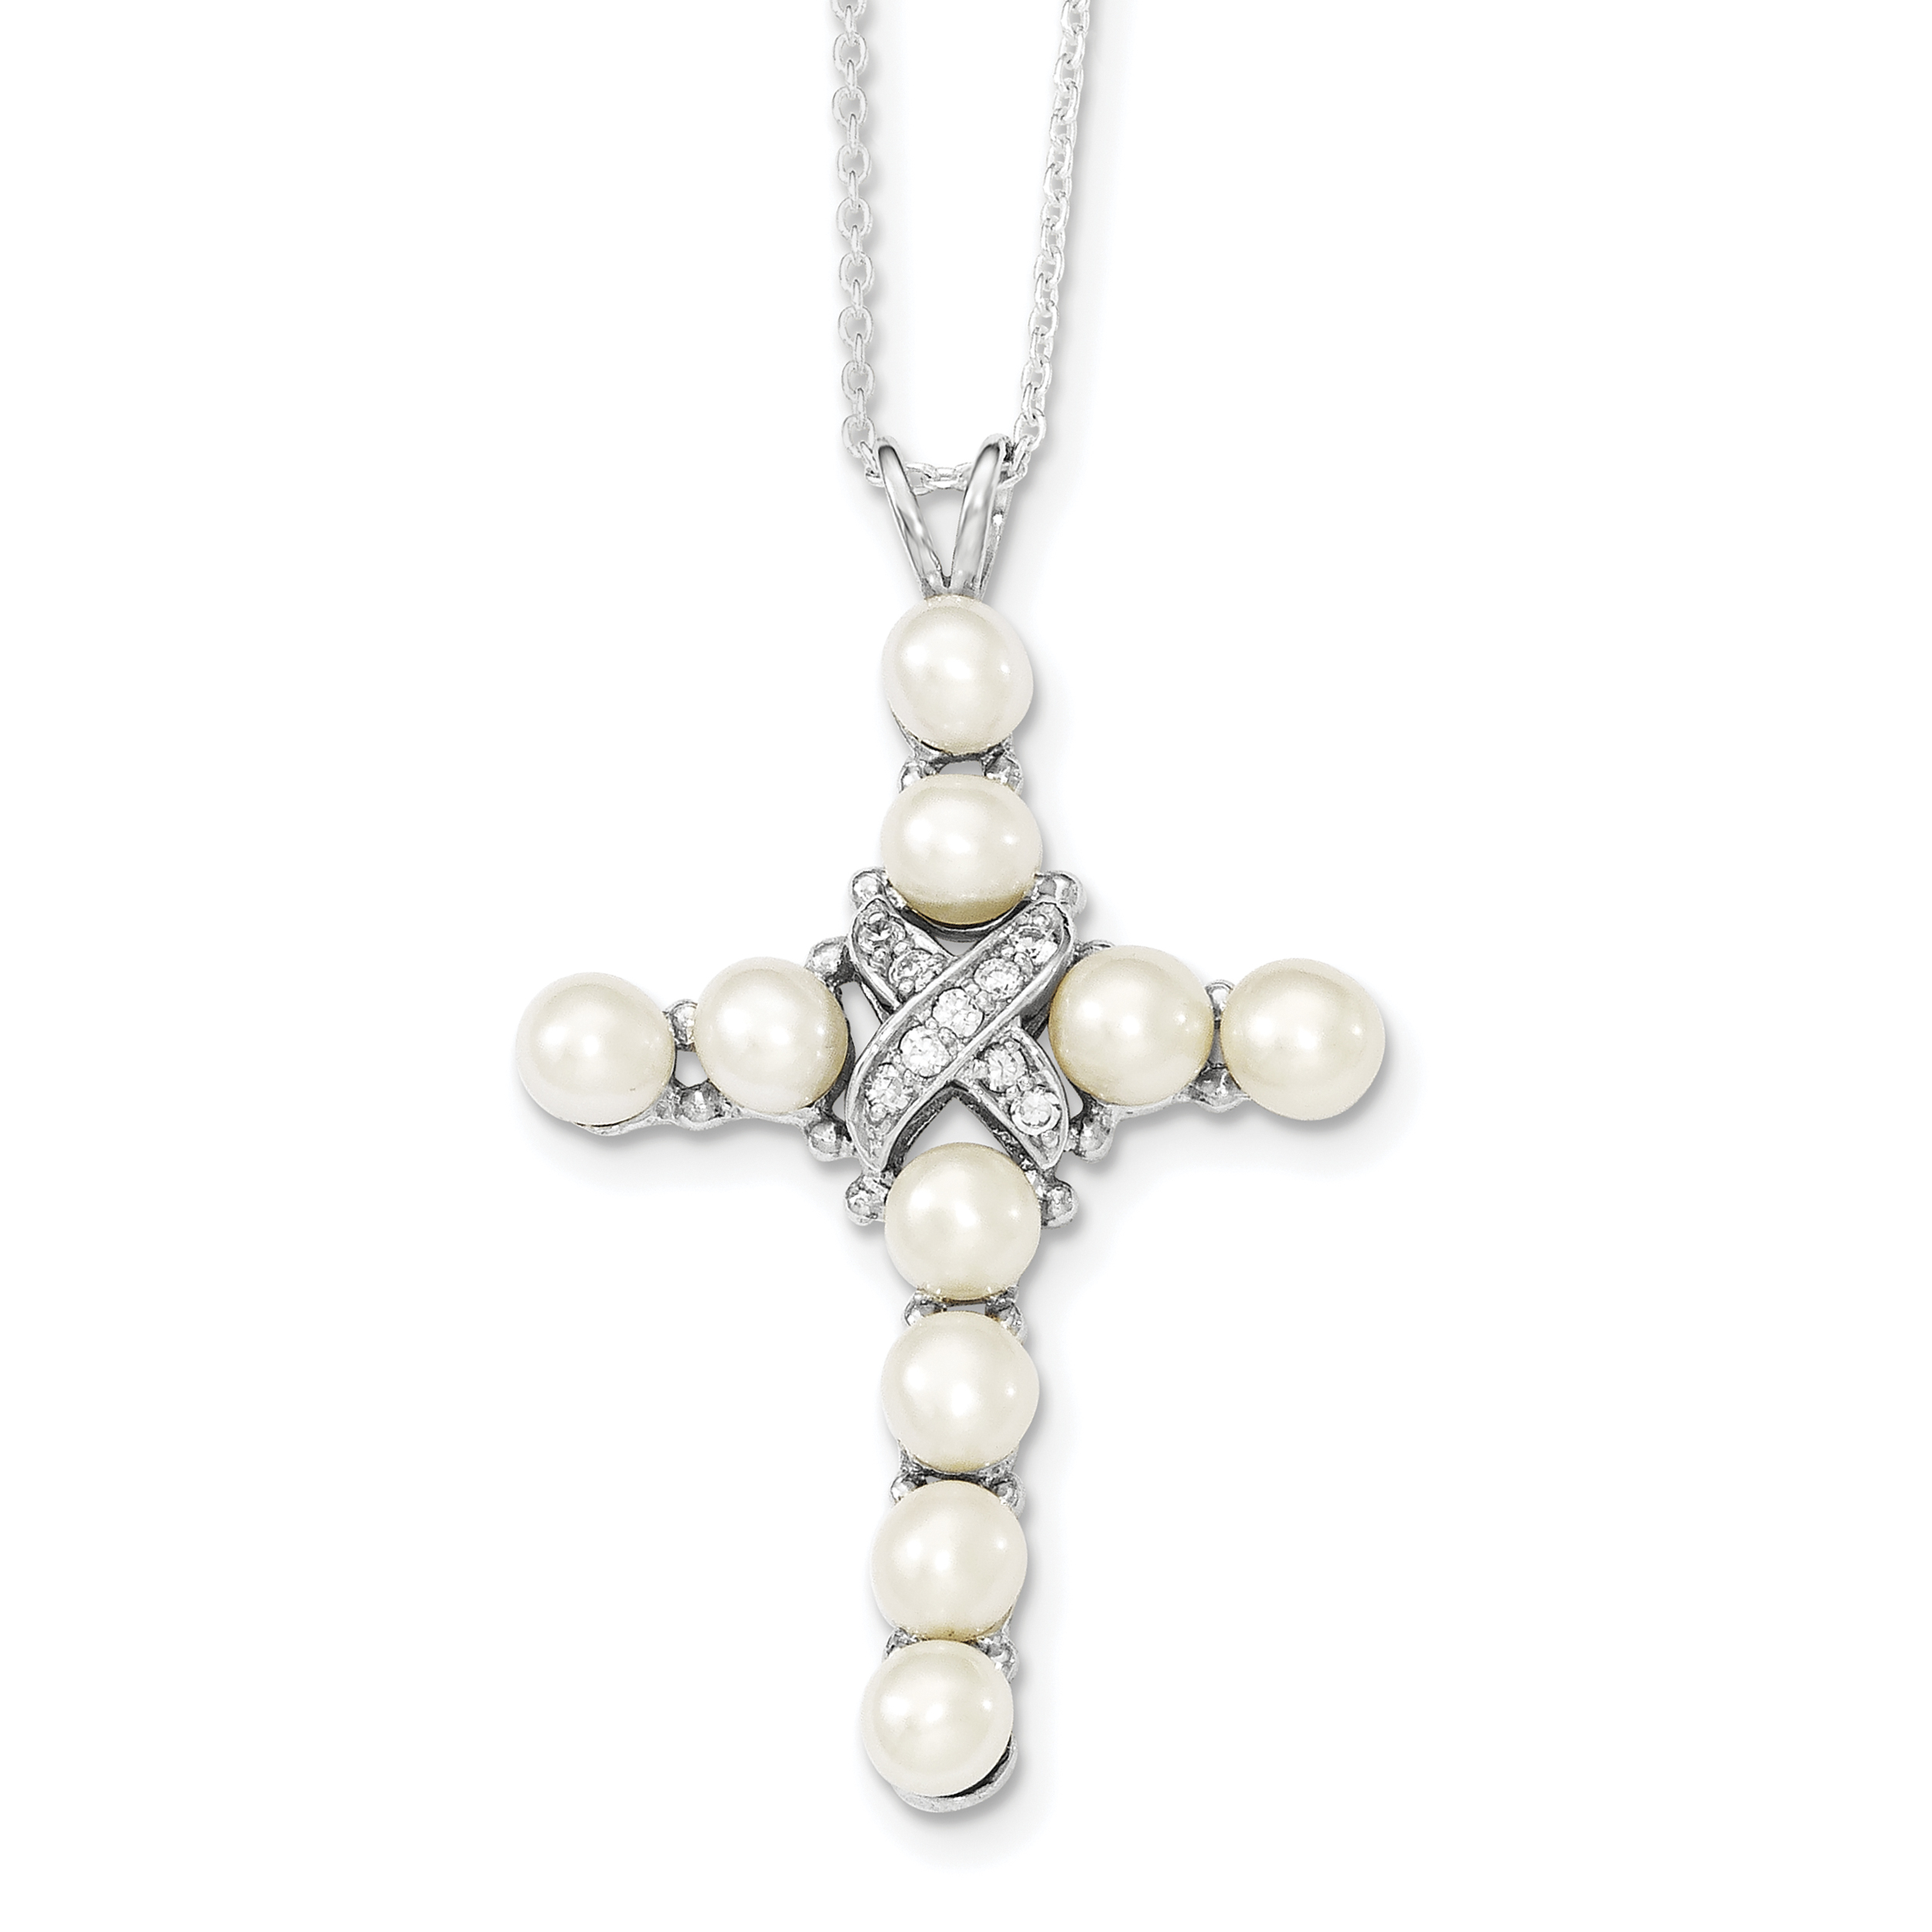 925 Sterling Silver Cubic Zirconia Cz Freshwater Cultured Pearl Cross Religious Chain Necklace Pendant Charm Fine Jewelry Gifts For Women For Her - image 3 de 3